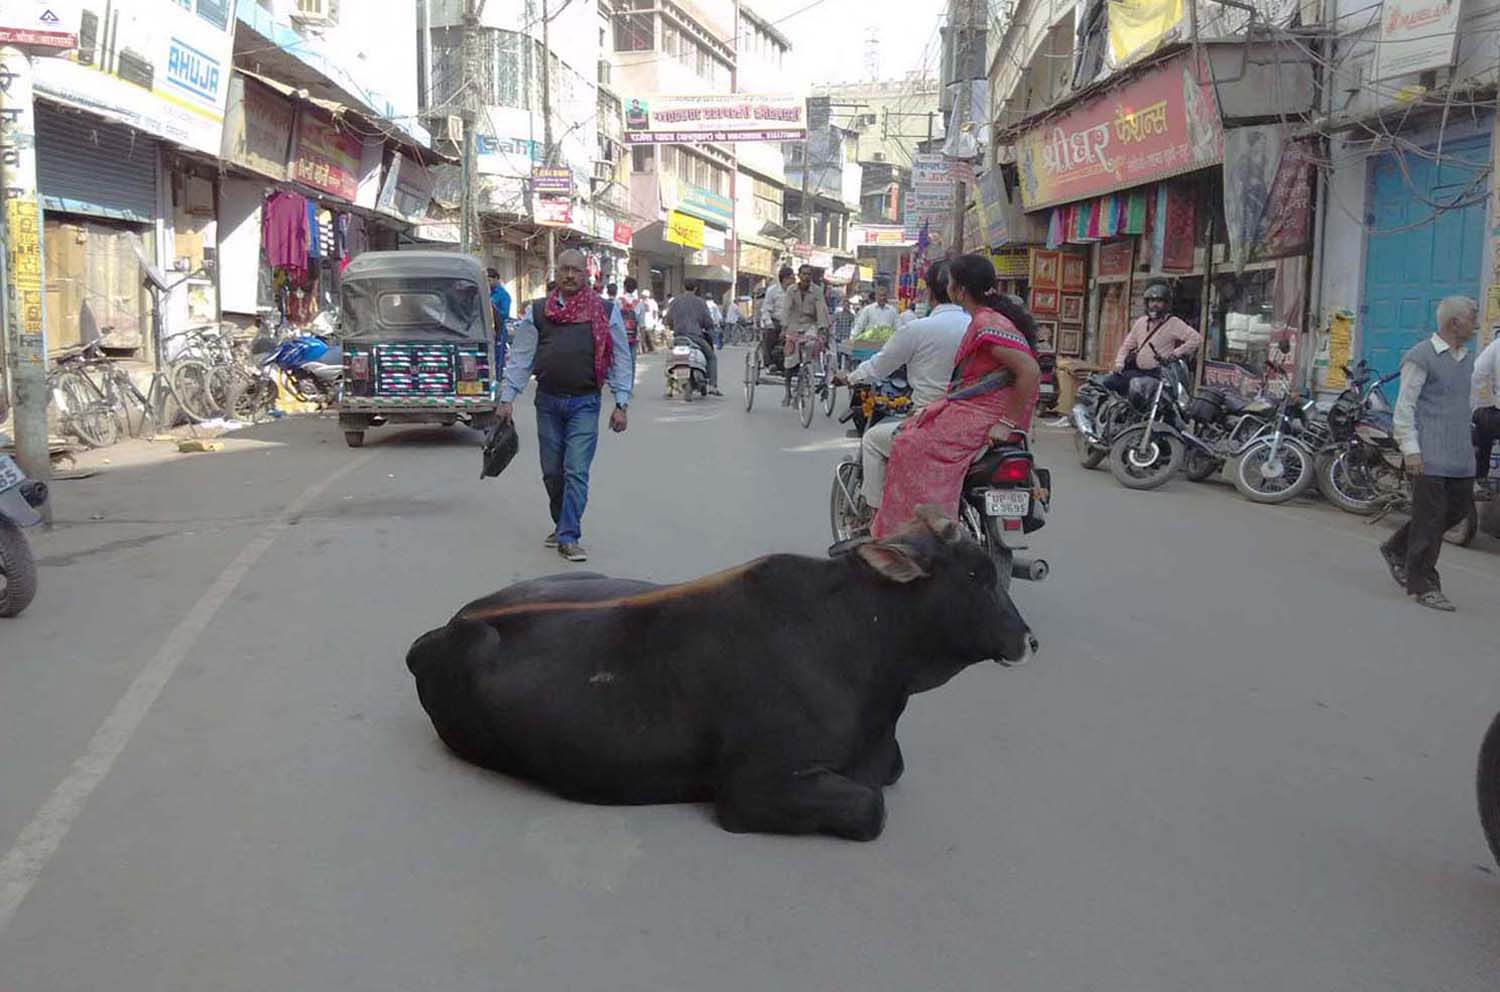 Bull on the road in Varanasi, India